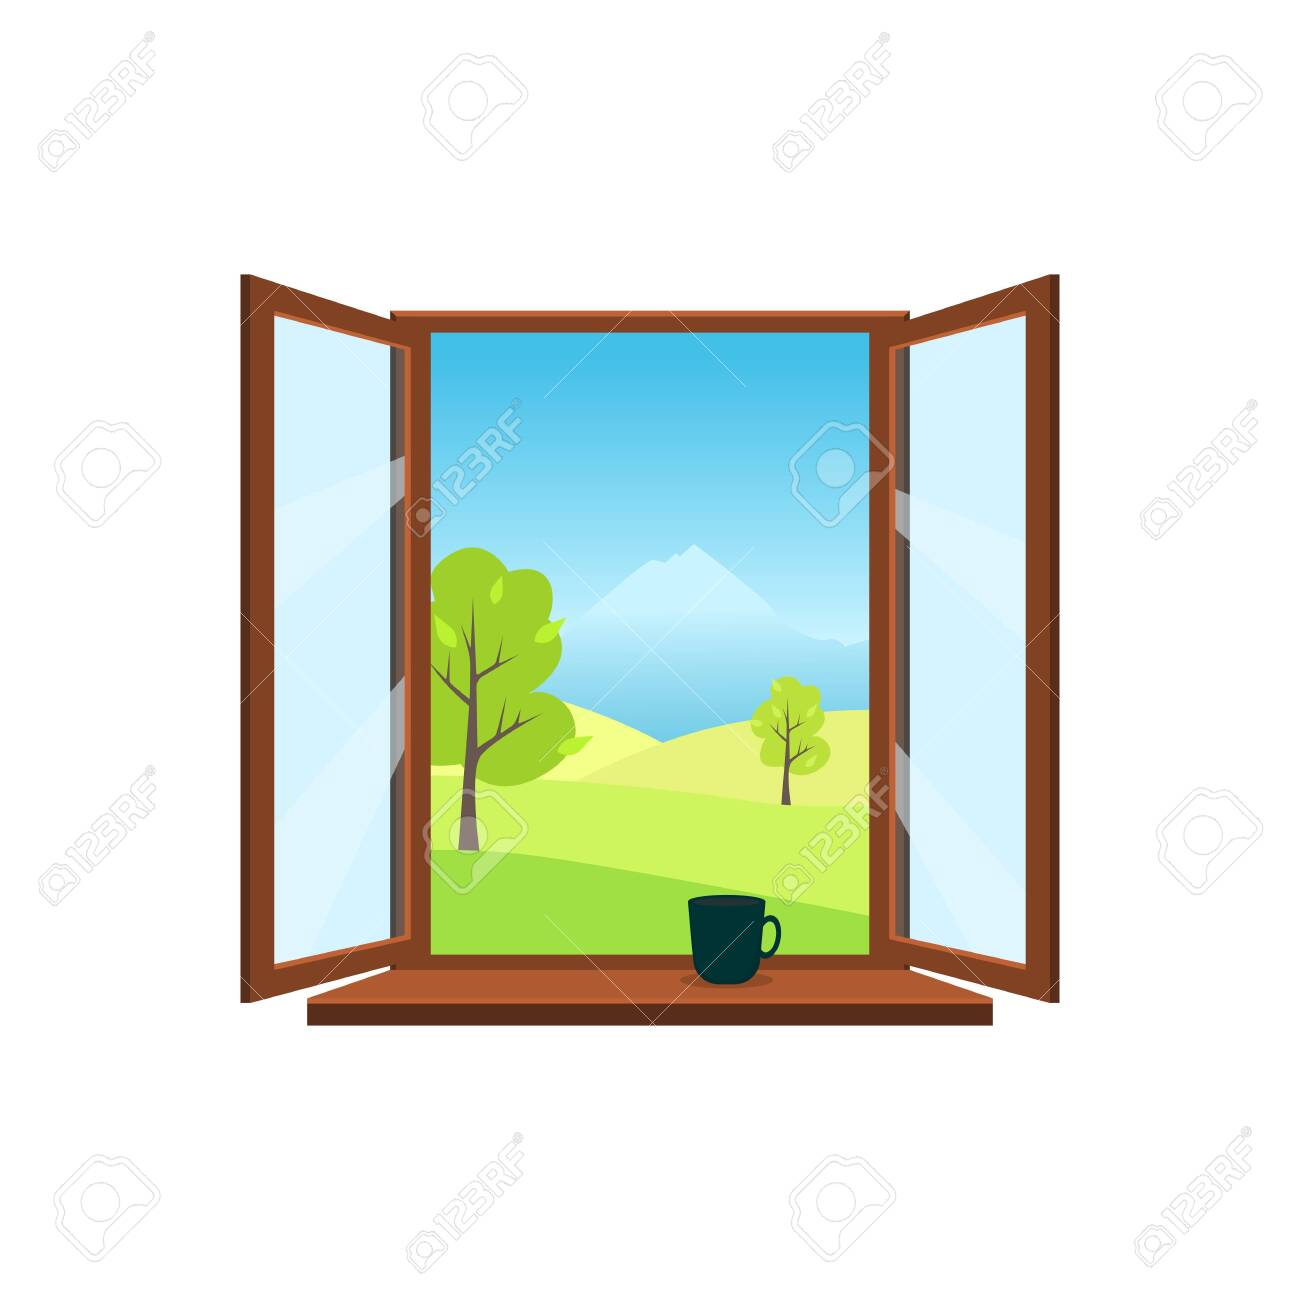 Open window on white background. Open window overlooking the spring landscape: meadows, mountains, trees. On the windowsill is worth a mug. Flat style vector illustration. - 119956885